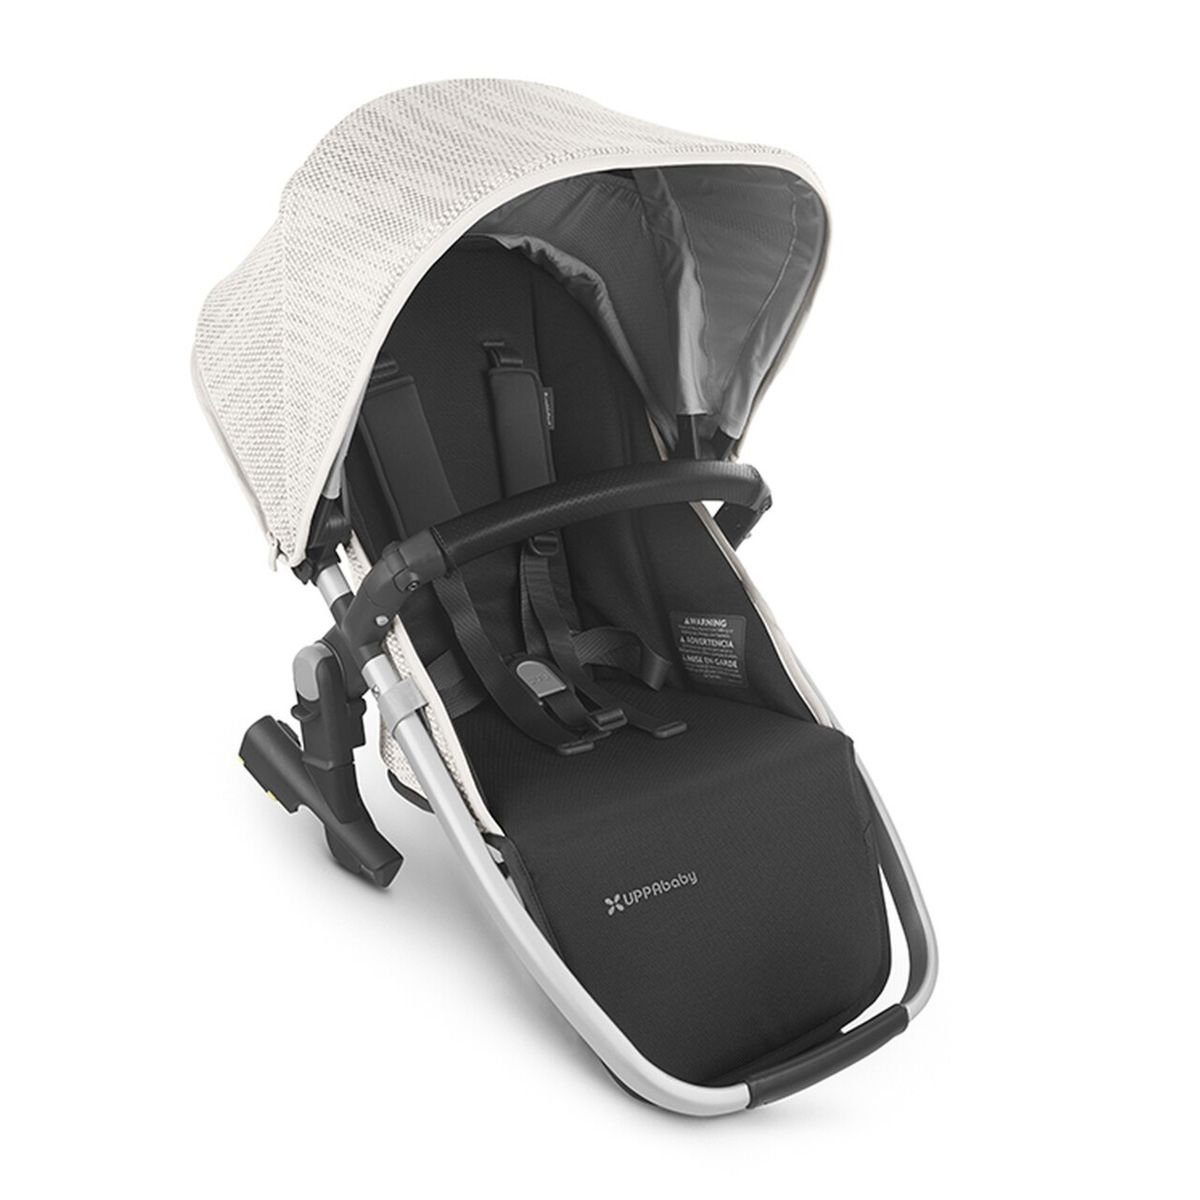 UPPABaby VISTA V2 RumbleSeat - SIERRA (Dune Knit/Silver/Black Leather)